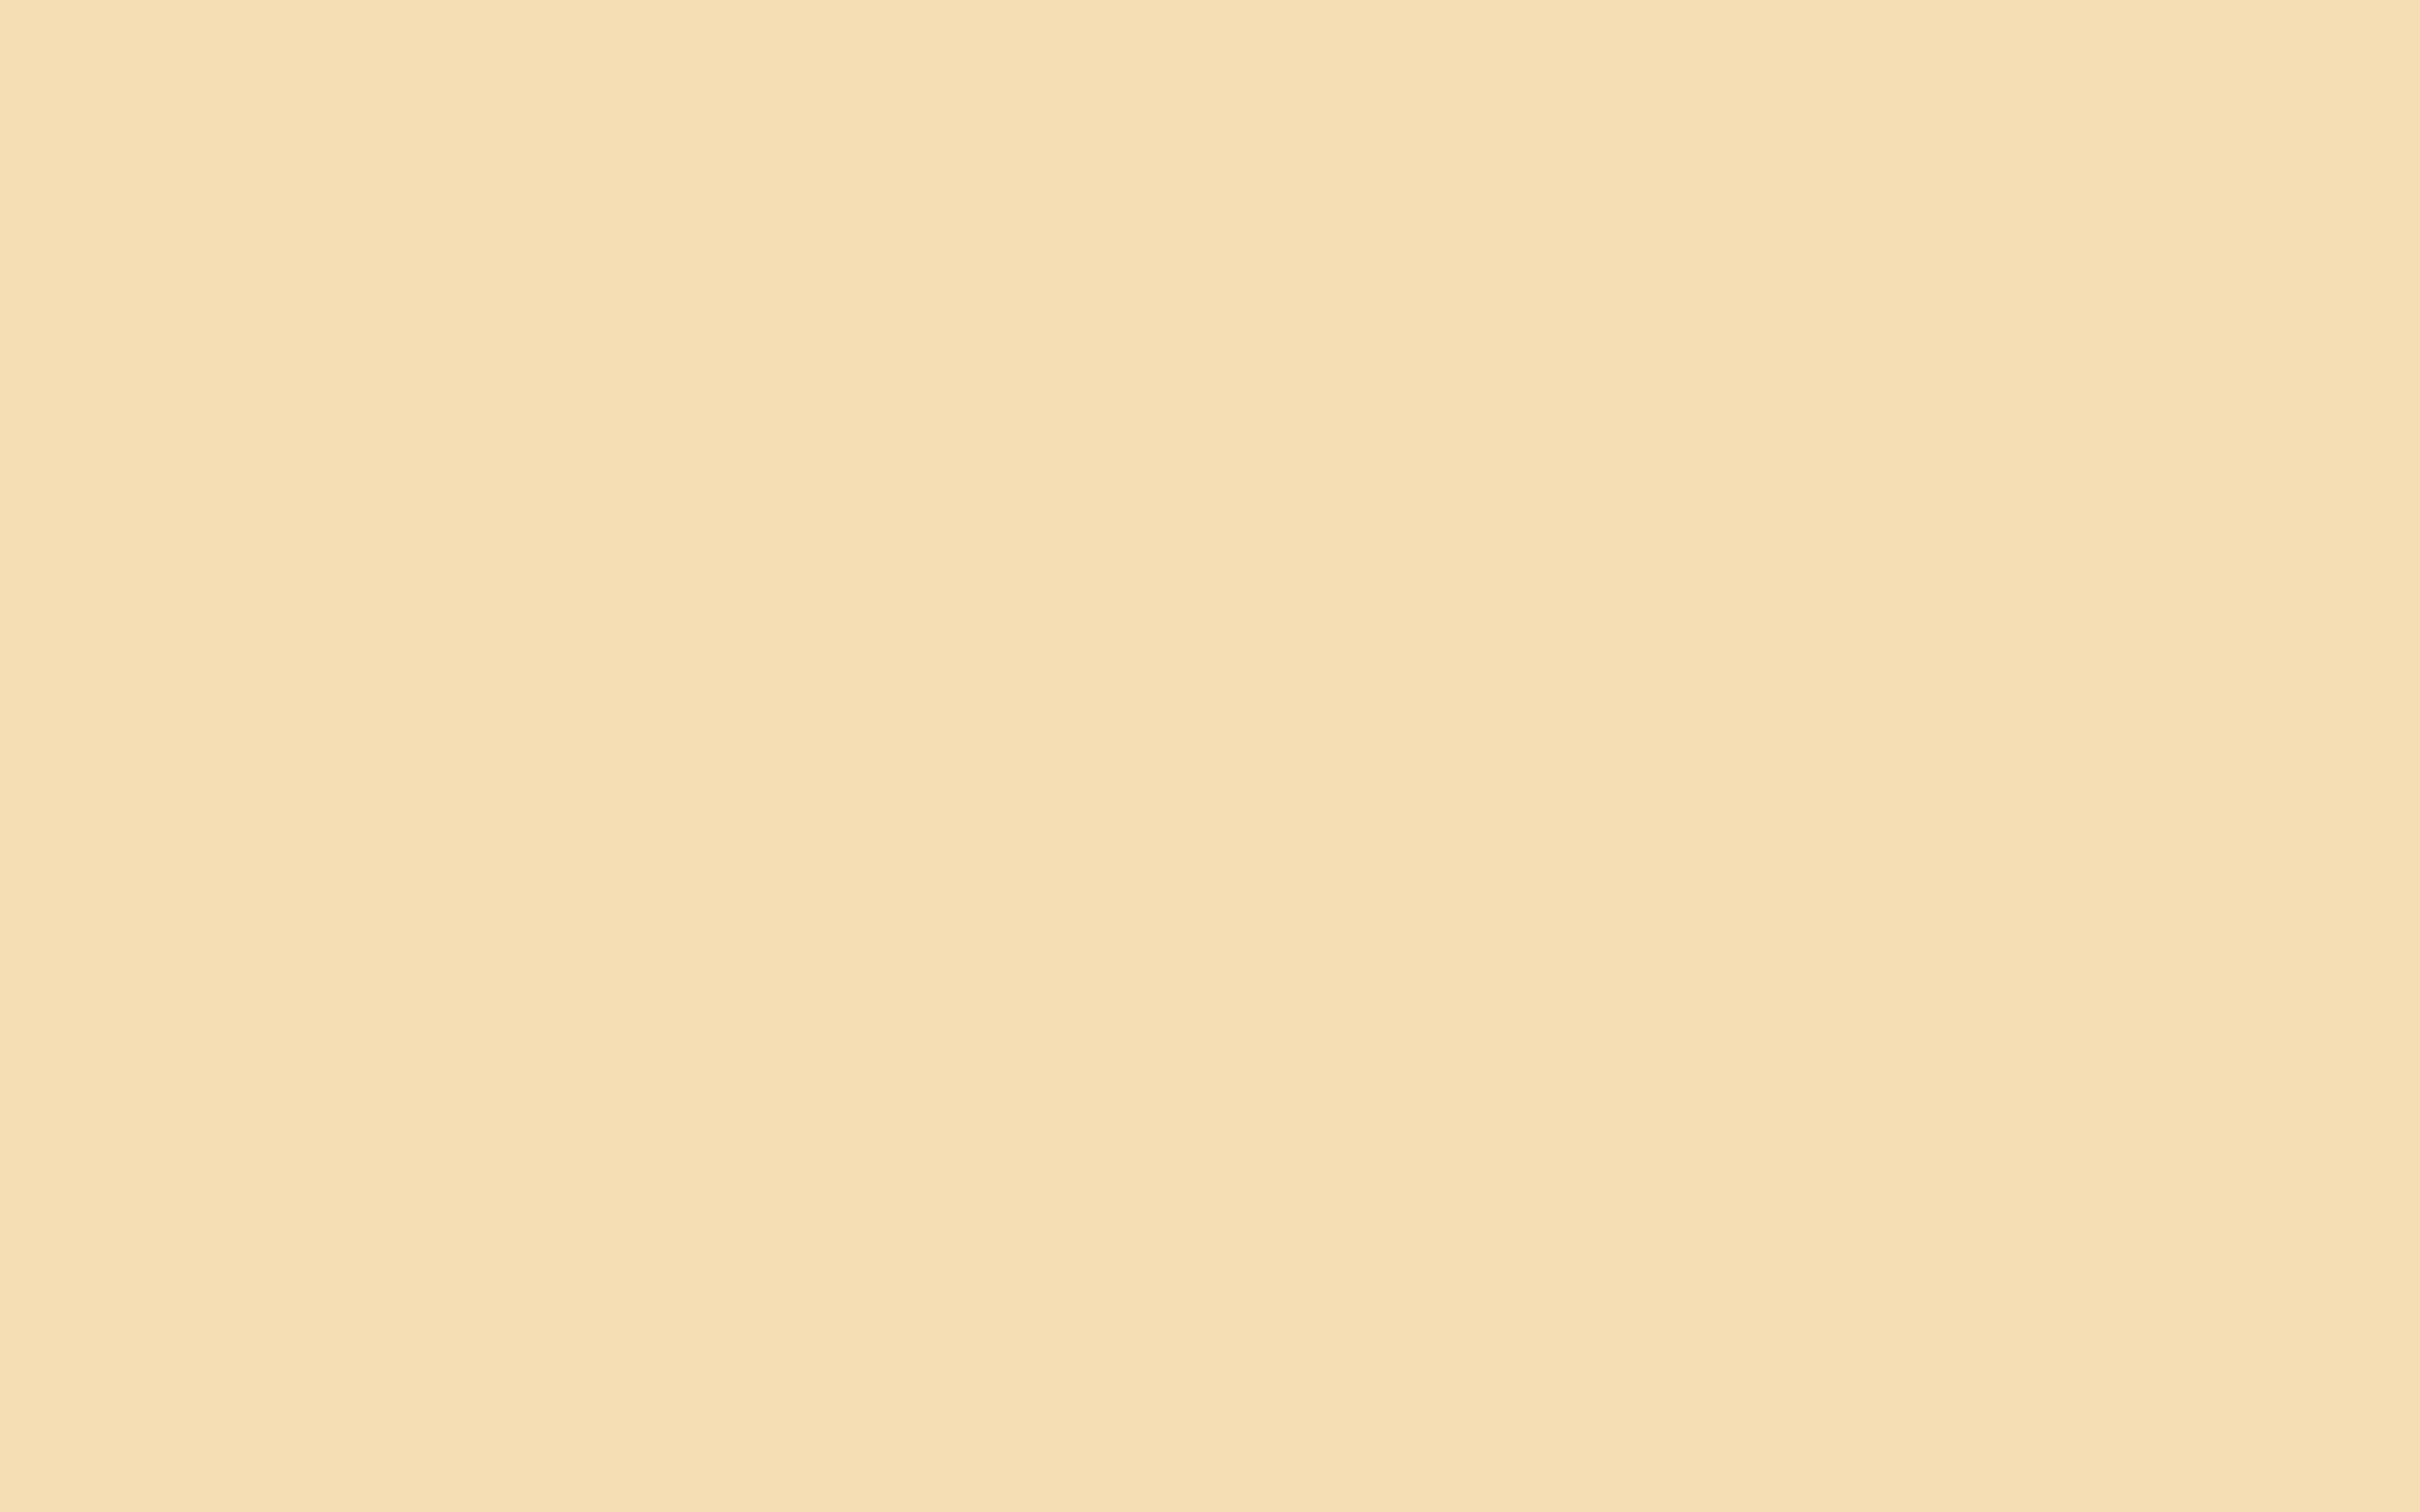 2560x1600 Wheat Solid Color Background